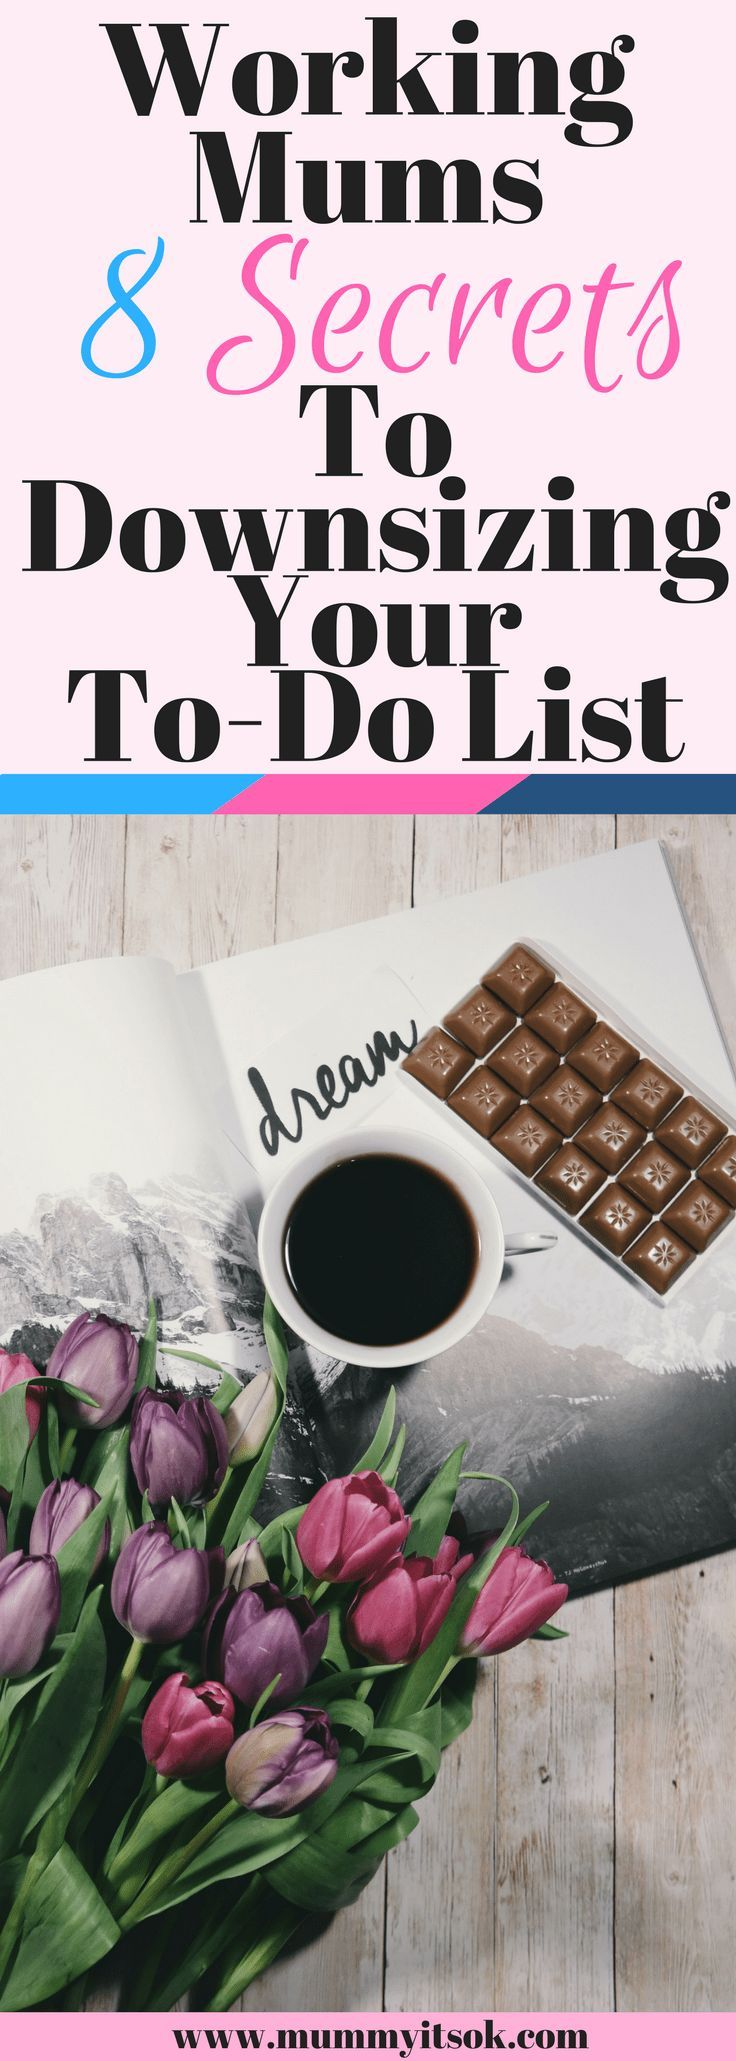 Working Mums : 8 Secrets to Downsizing Your To-Do List | Working Mums To-Do List | Working Mums Organised | Working Mum Hacks | Working Mum Tips | Working Mum Schedule | Working Mum Routines | Best To-Do List For Busy Mums | Busy Mums To-Do List